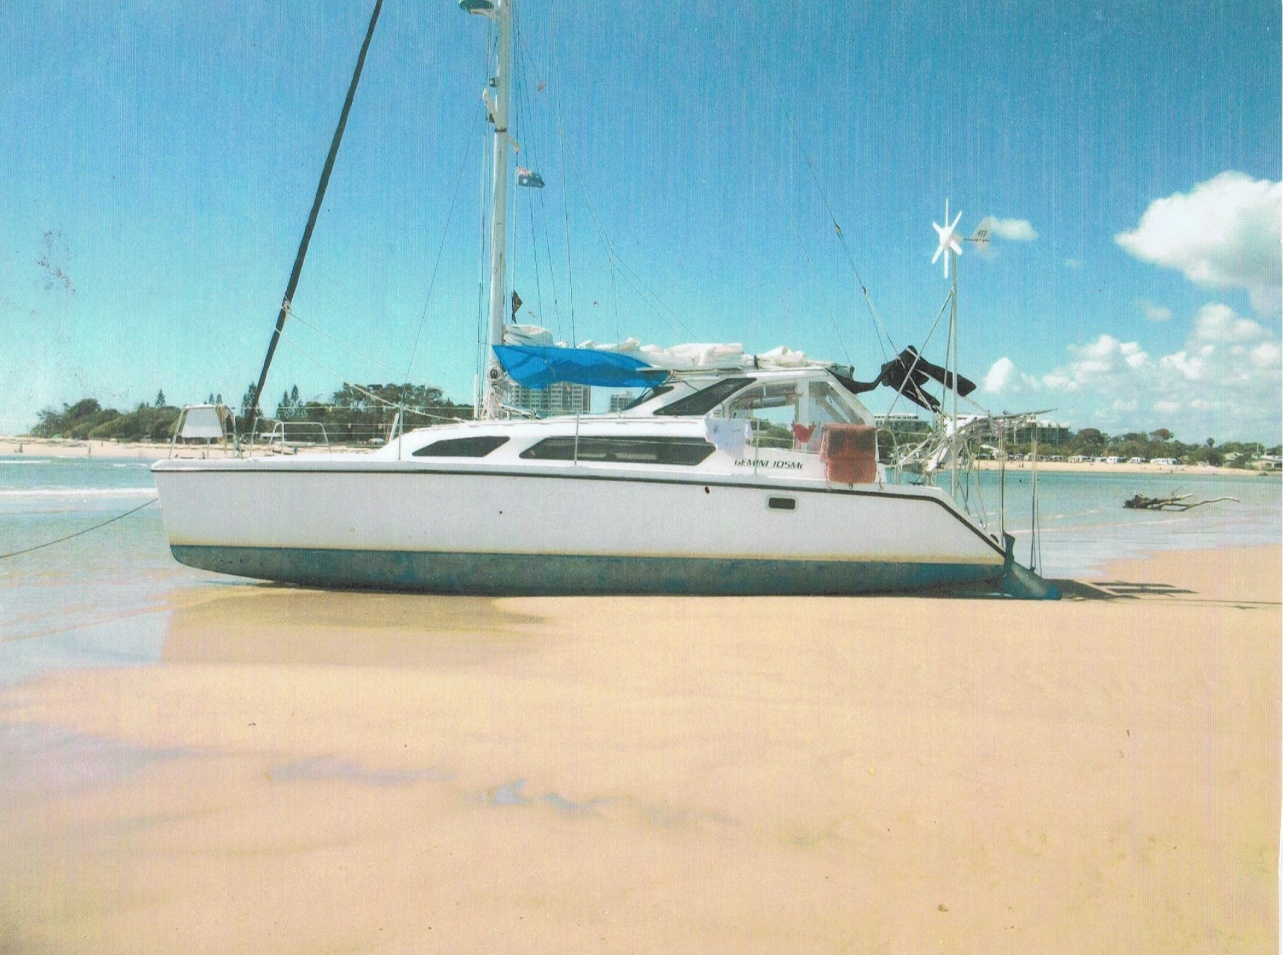 Click image for larger version  Name:Boat, 002.jpg Views:332 Size:416.3 KB ID:181664